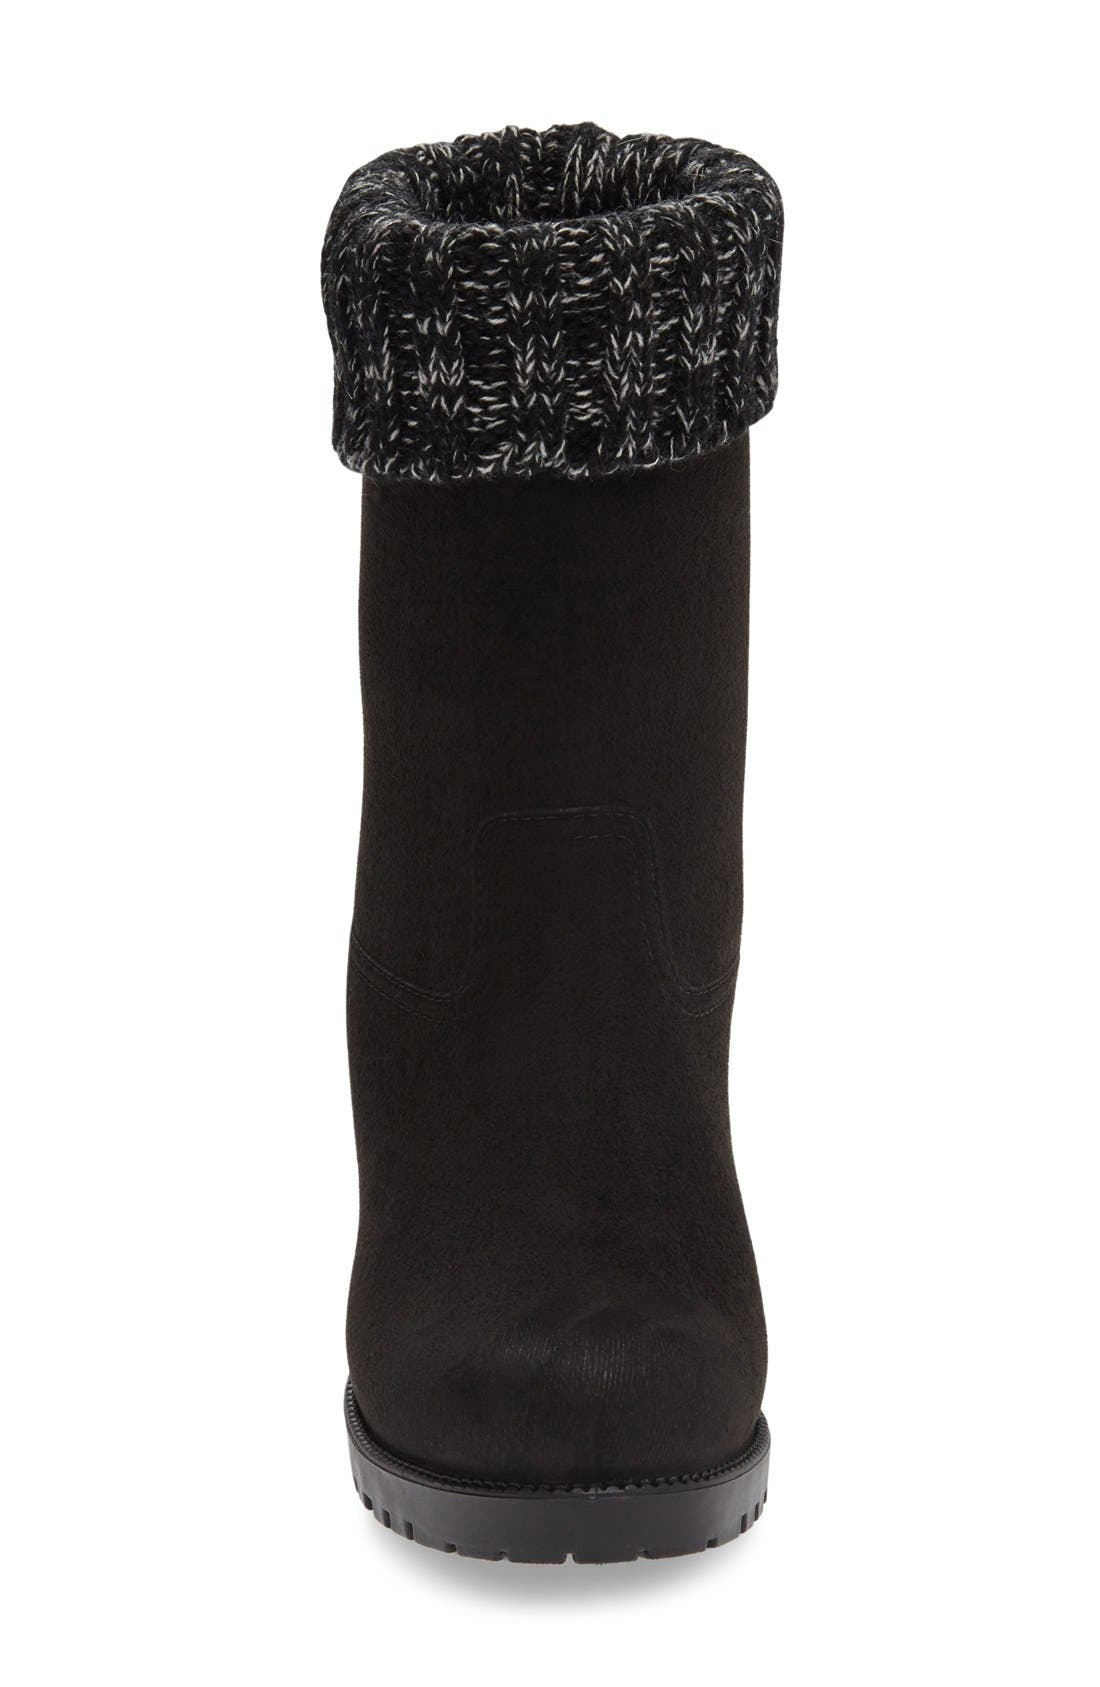 Shelby Knit Cuff Waterproof Boot,                             Alternate thumbnail 3, color,                             Black